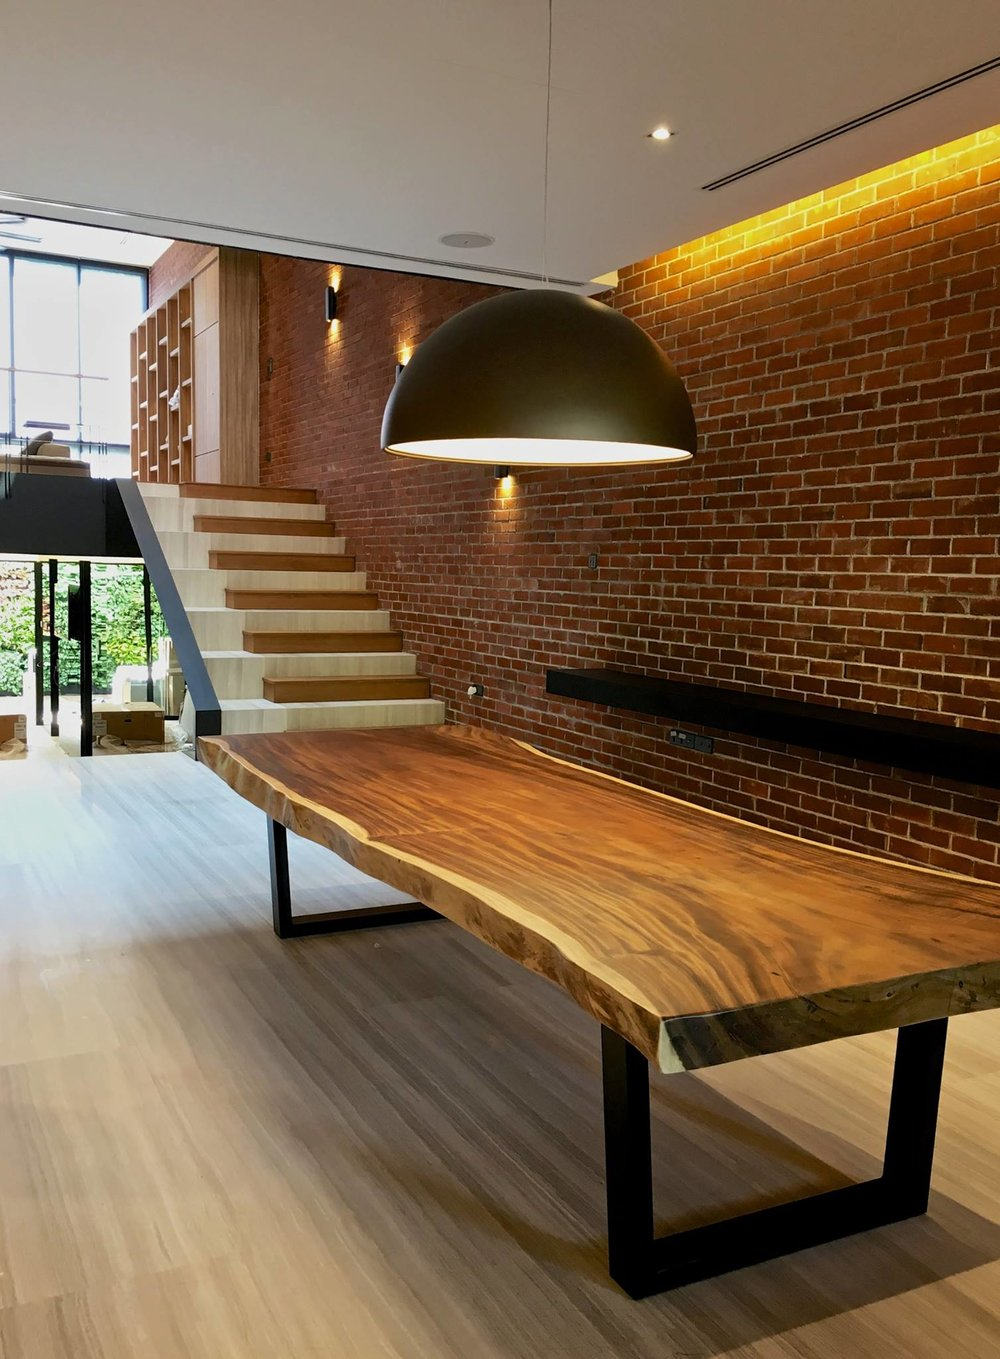 Suar Wood Long Dining Table // Herman Furniture Singapore.jpg